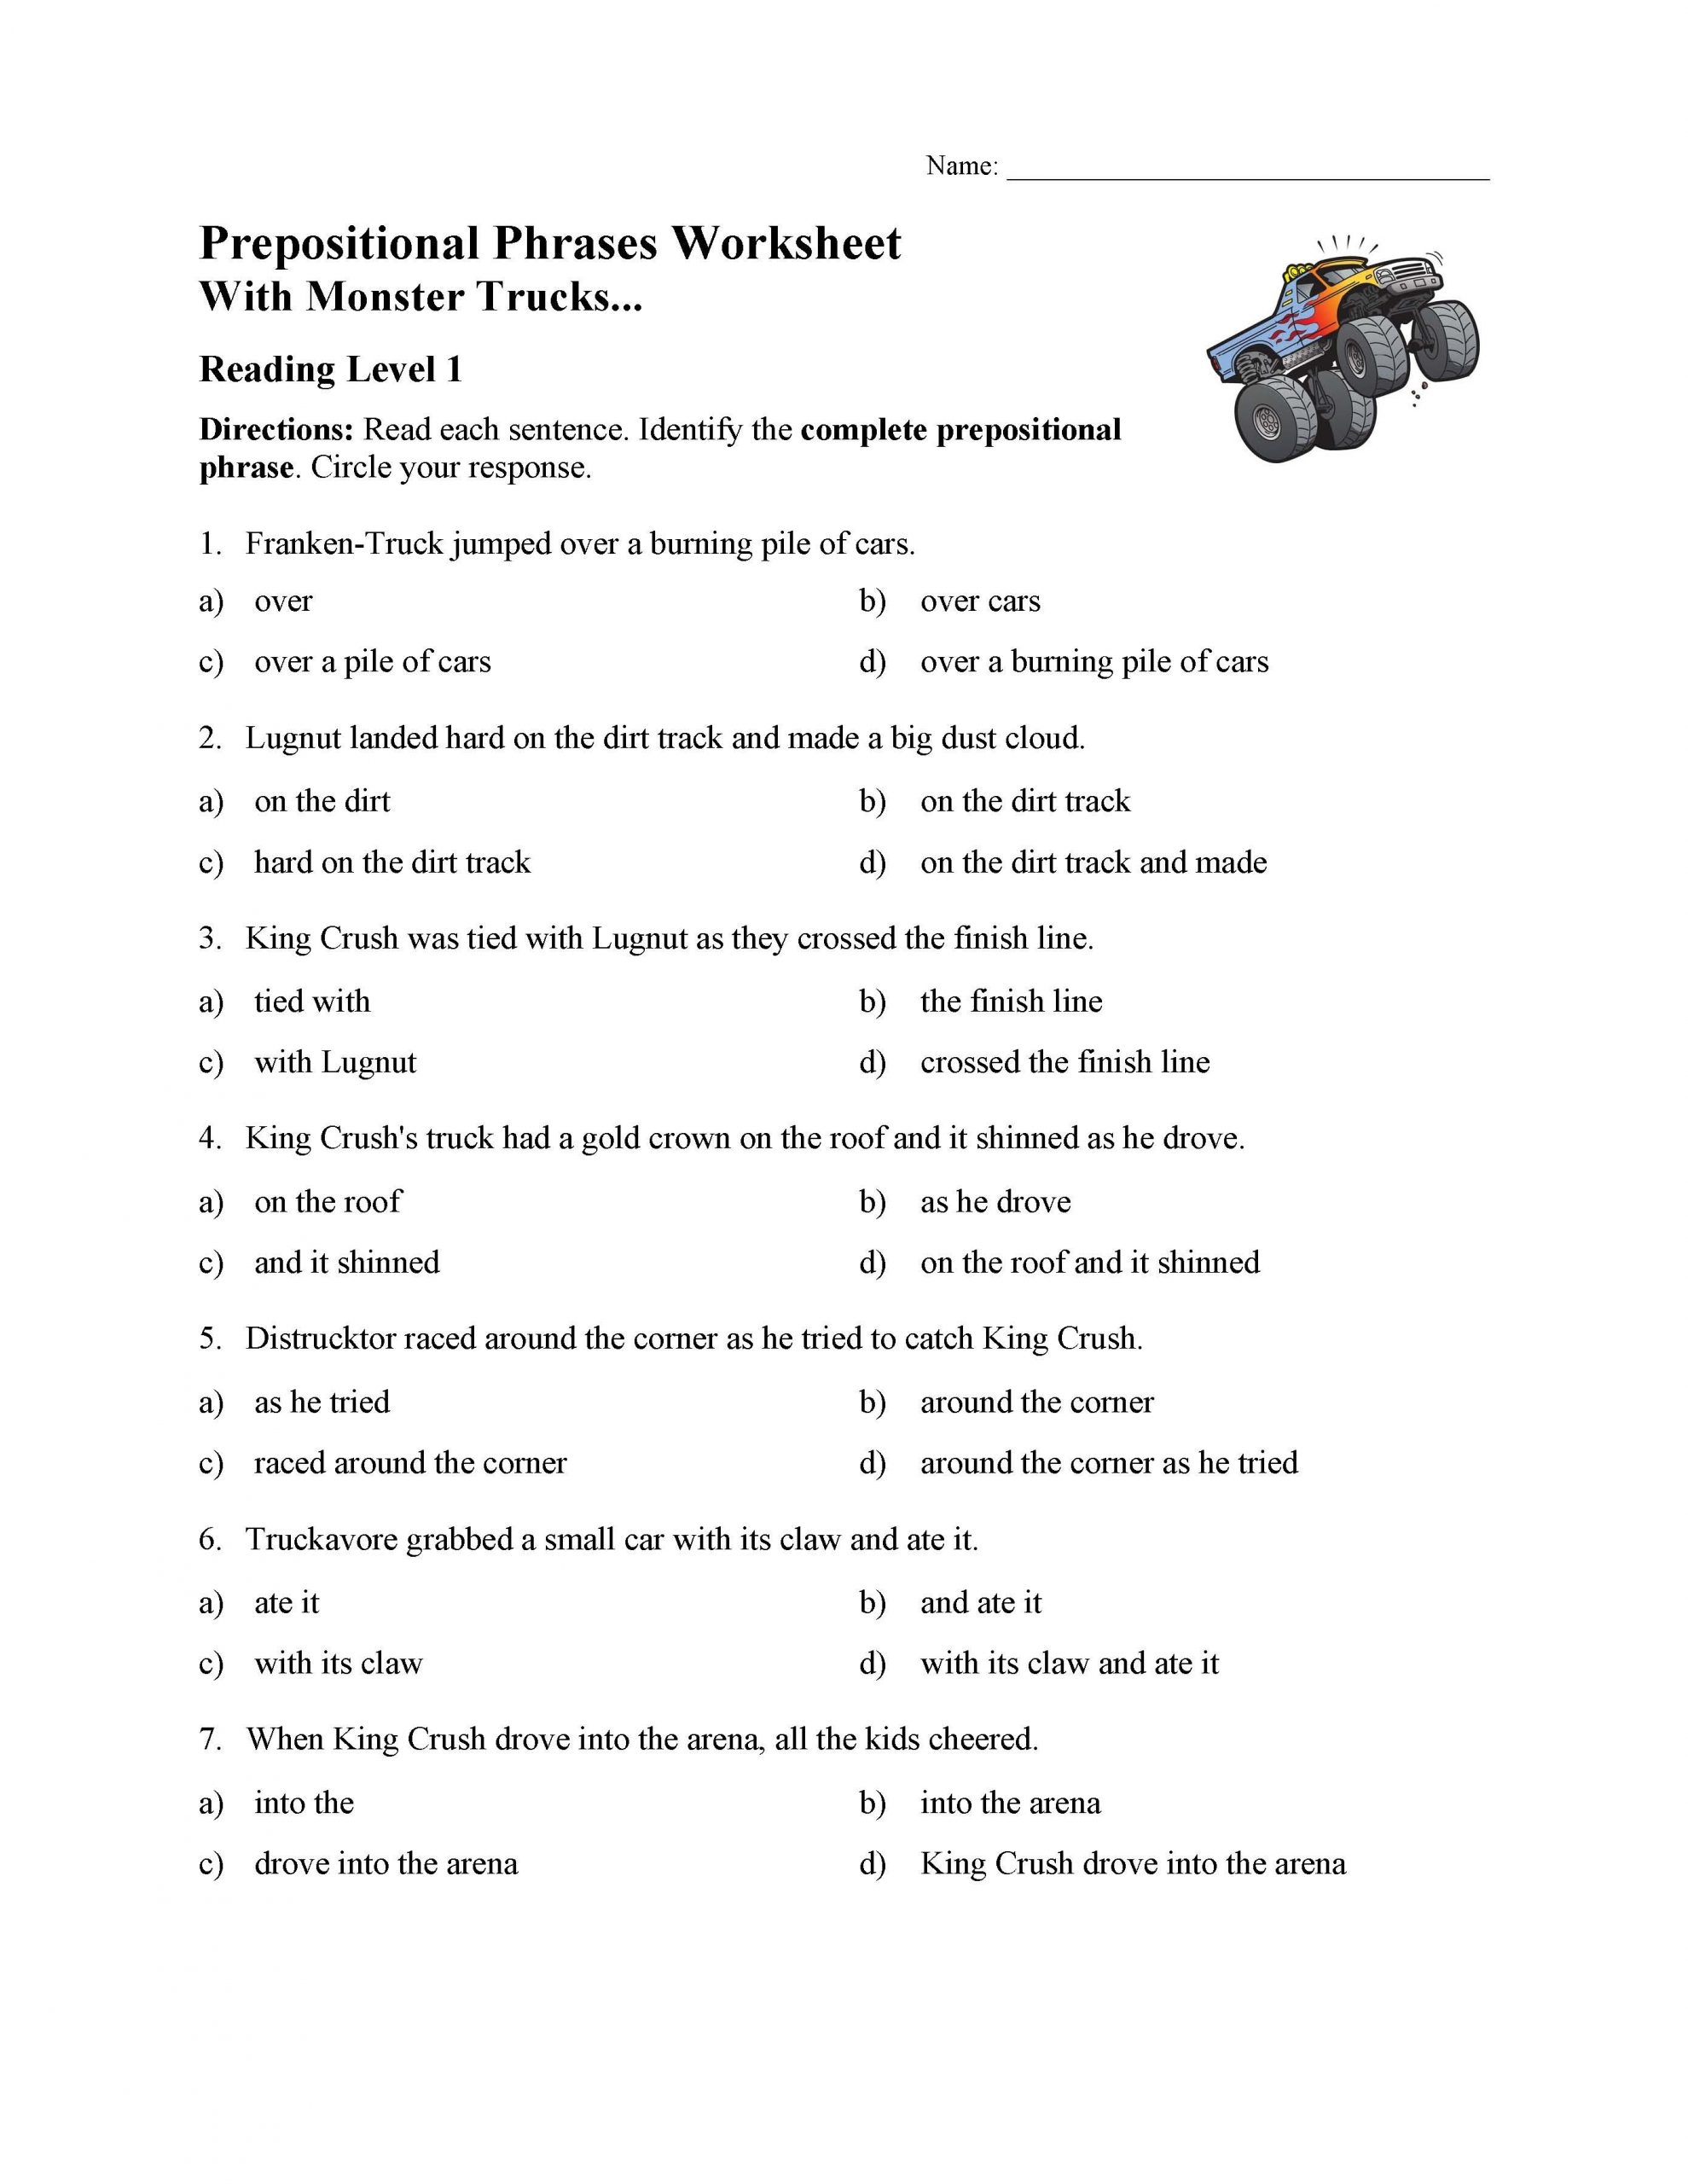 Grammar Worksheet 5th Grade Prepositional Phrases Worksheet 1 Reading Level 1